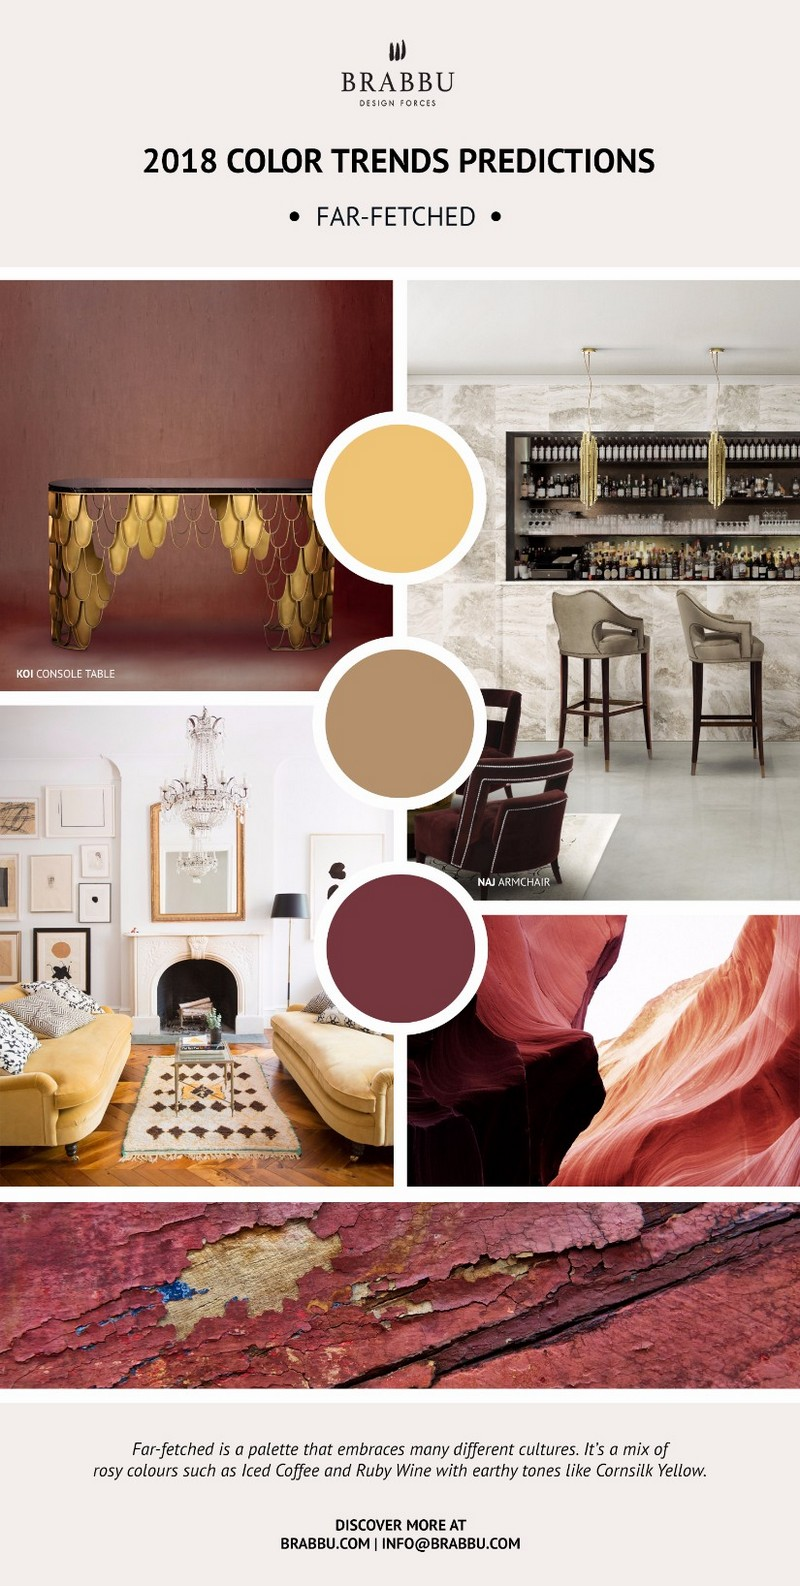 Pantone 2018 Color Trends For Your Next Design Project ➤ To see more news about Luxury Bathrooms in the world visit us at http://luxurybathrooms.eu/ #luxurybathrooms #interiordesign #homedecor @BathroomsLuxury @bocadolobo @delightfulll @brabbu @essentialhomeeu @circudesign @mvalentinabath @luxxu @covethouse_